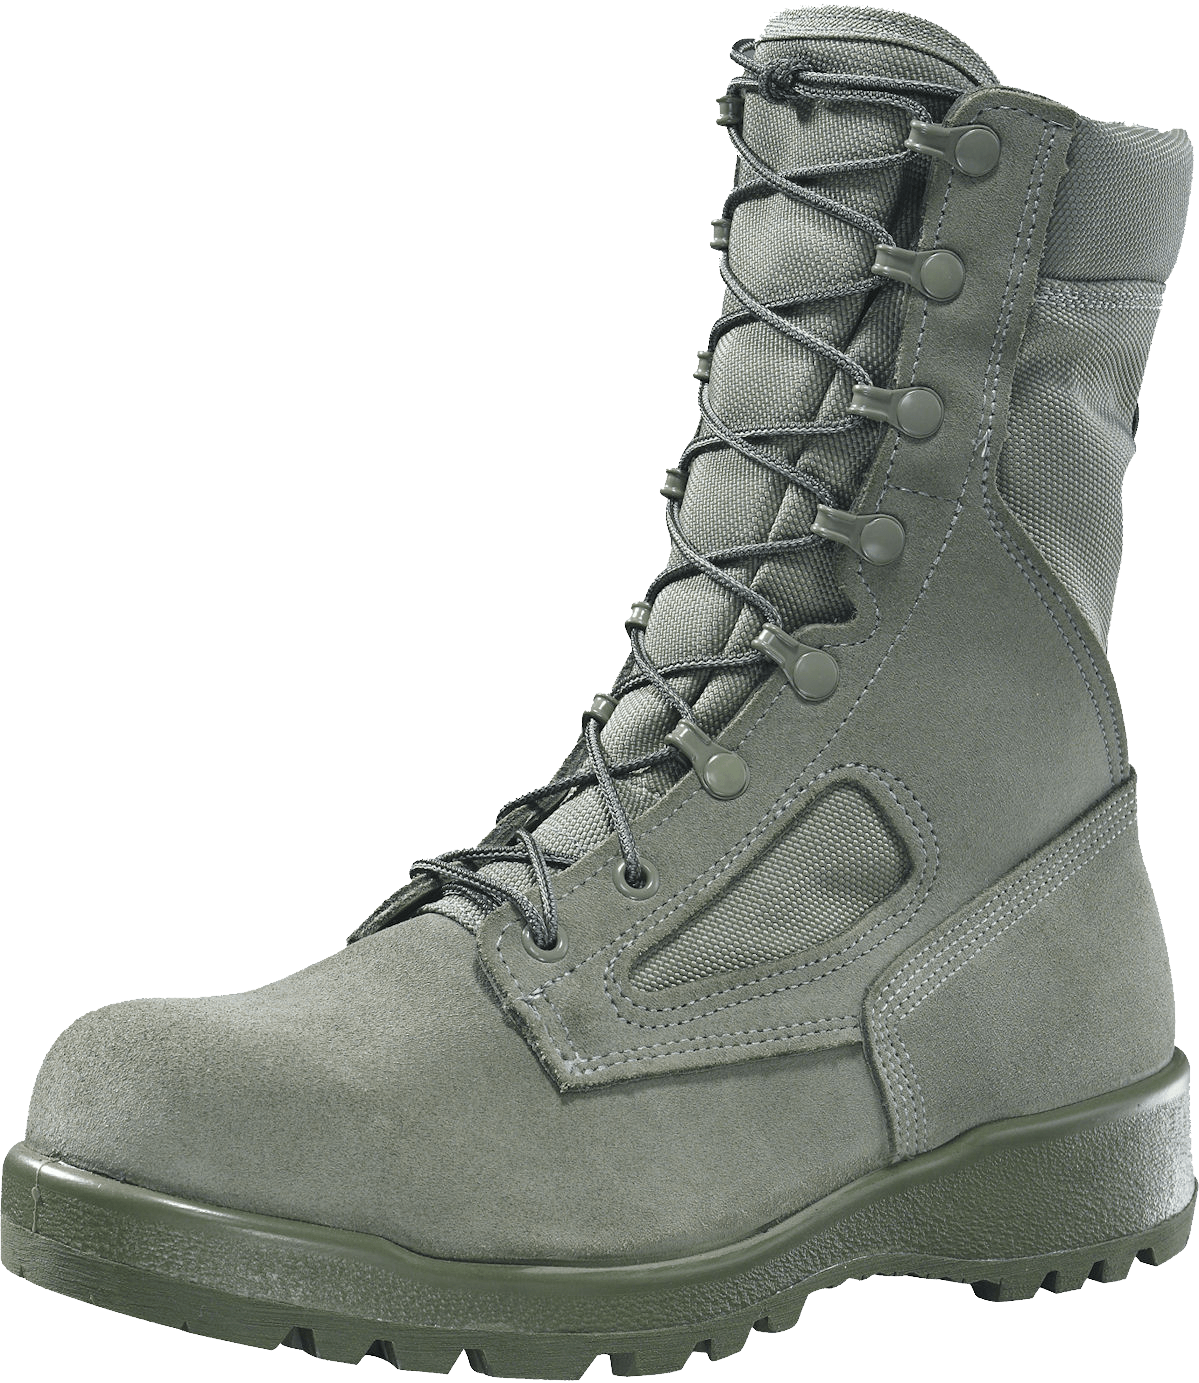 Hunting clipart hunting boot. Olive green boots png